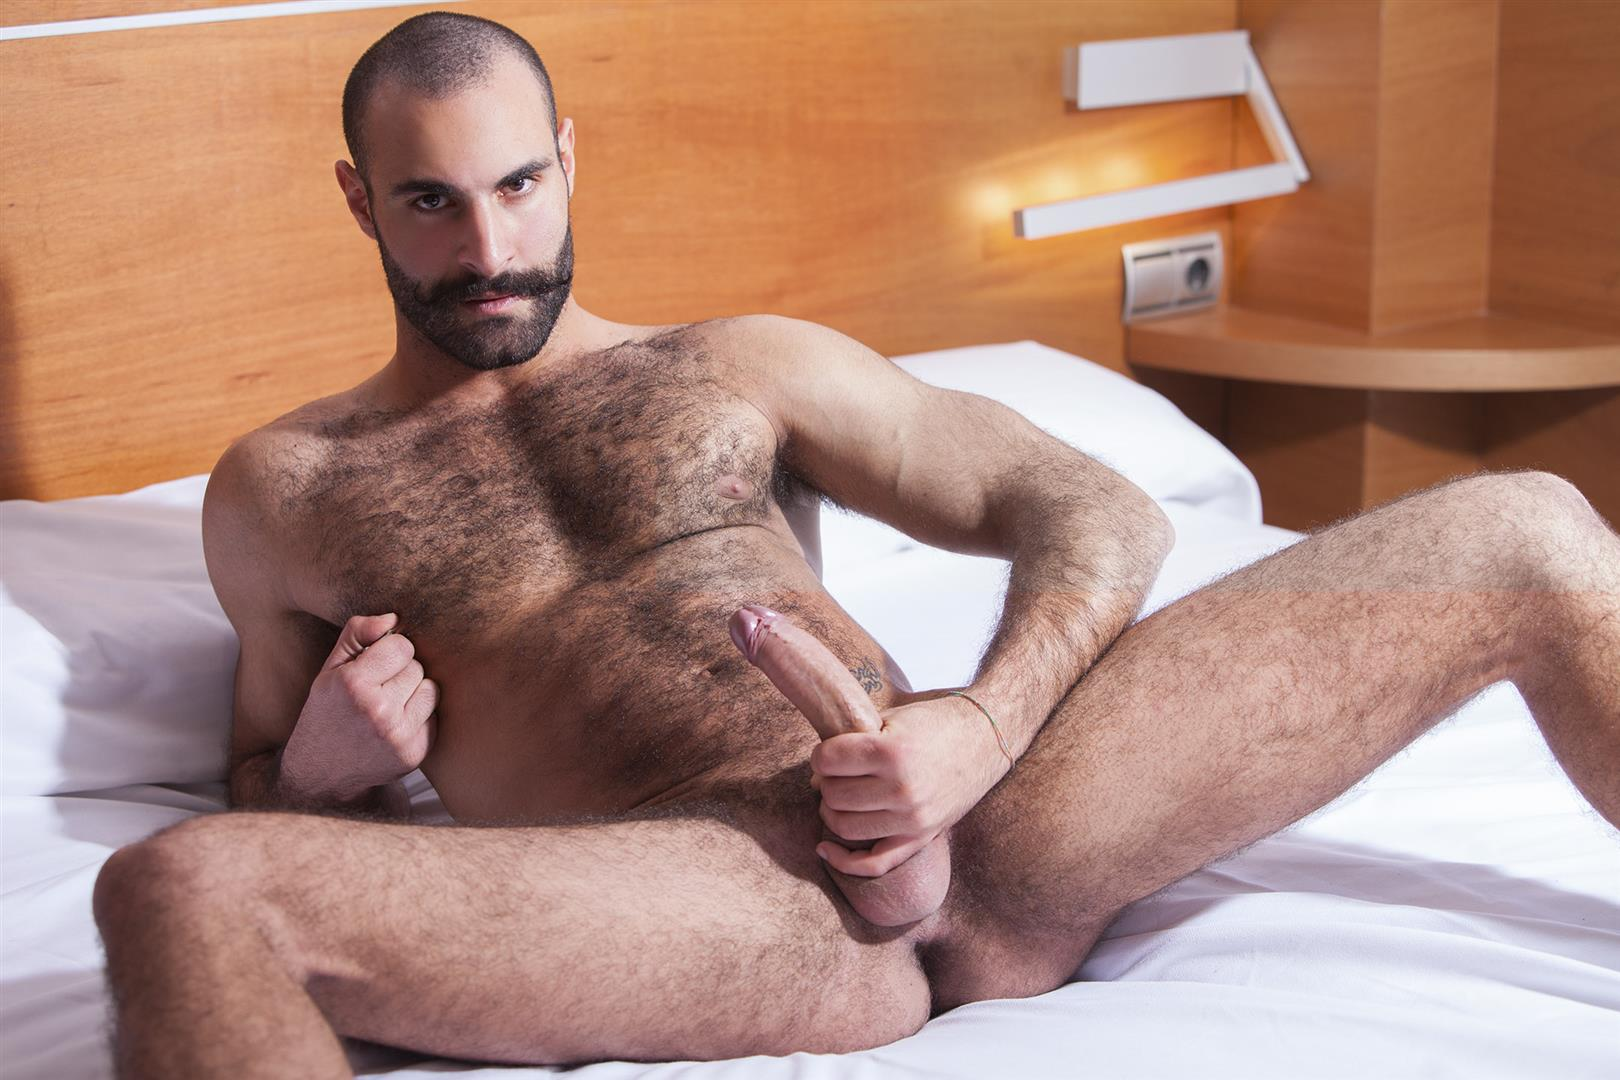 Fuckermate Jean Frank and Paco Hairy Muscle Hunks With Big Uncut Cocks Fucking Amateur Gay Porn 17 Hairy Muscle Italian Hunks With Big Uncut Cocks Fucking Rough